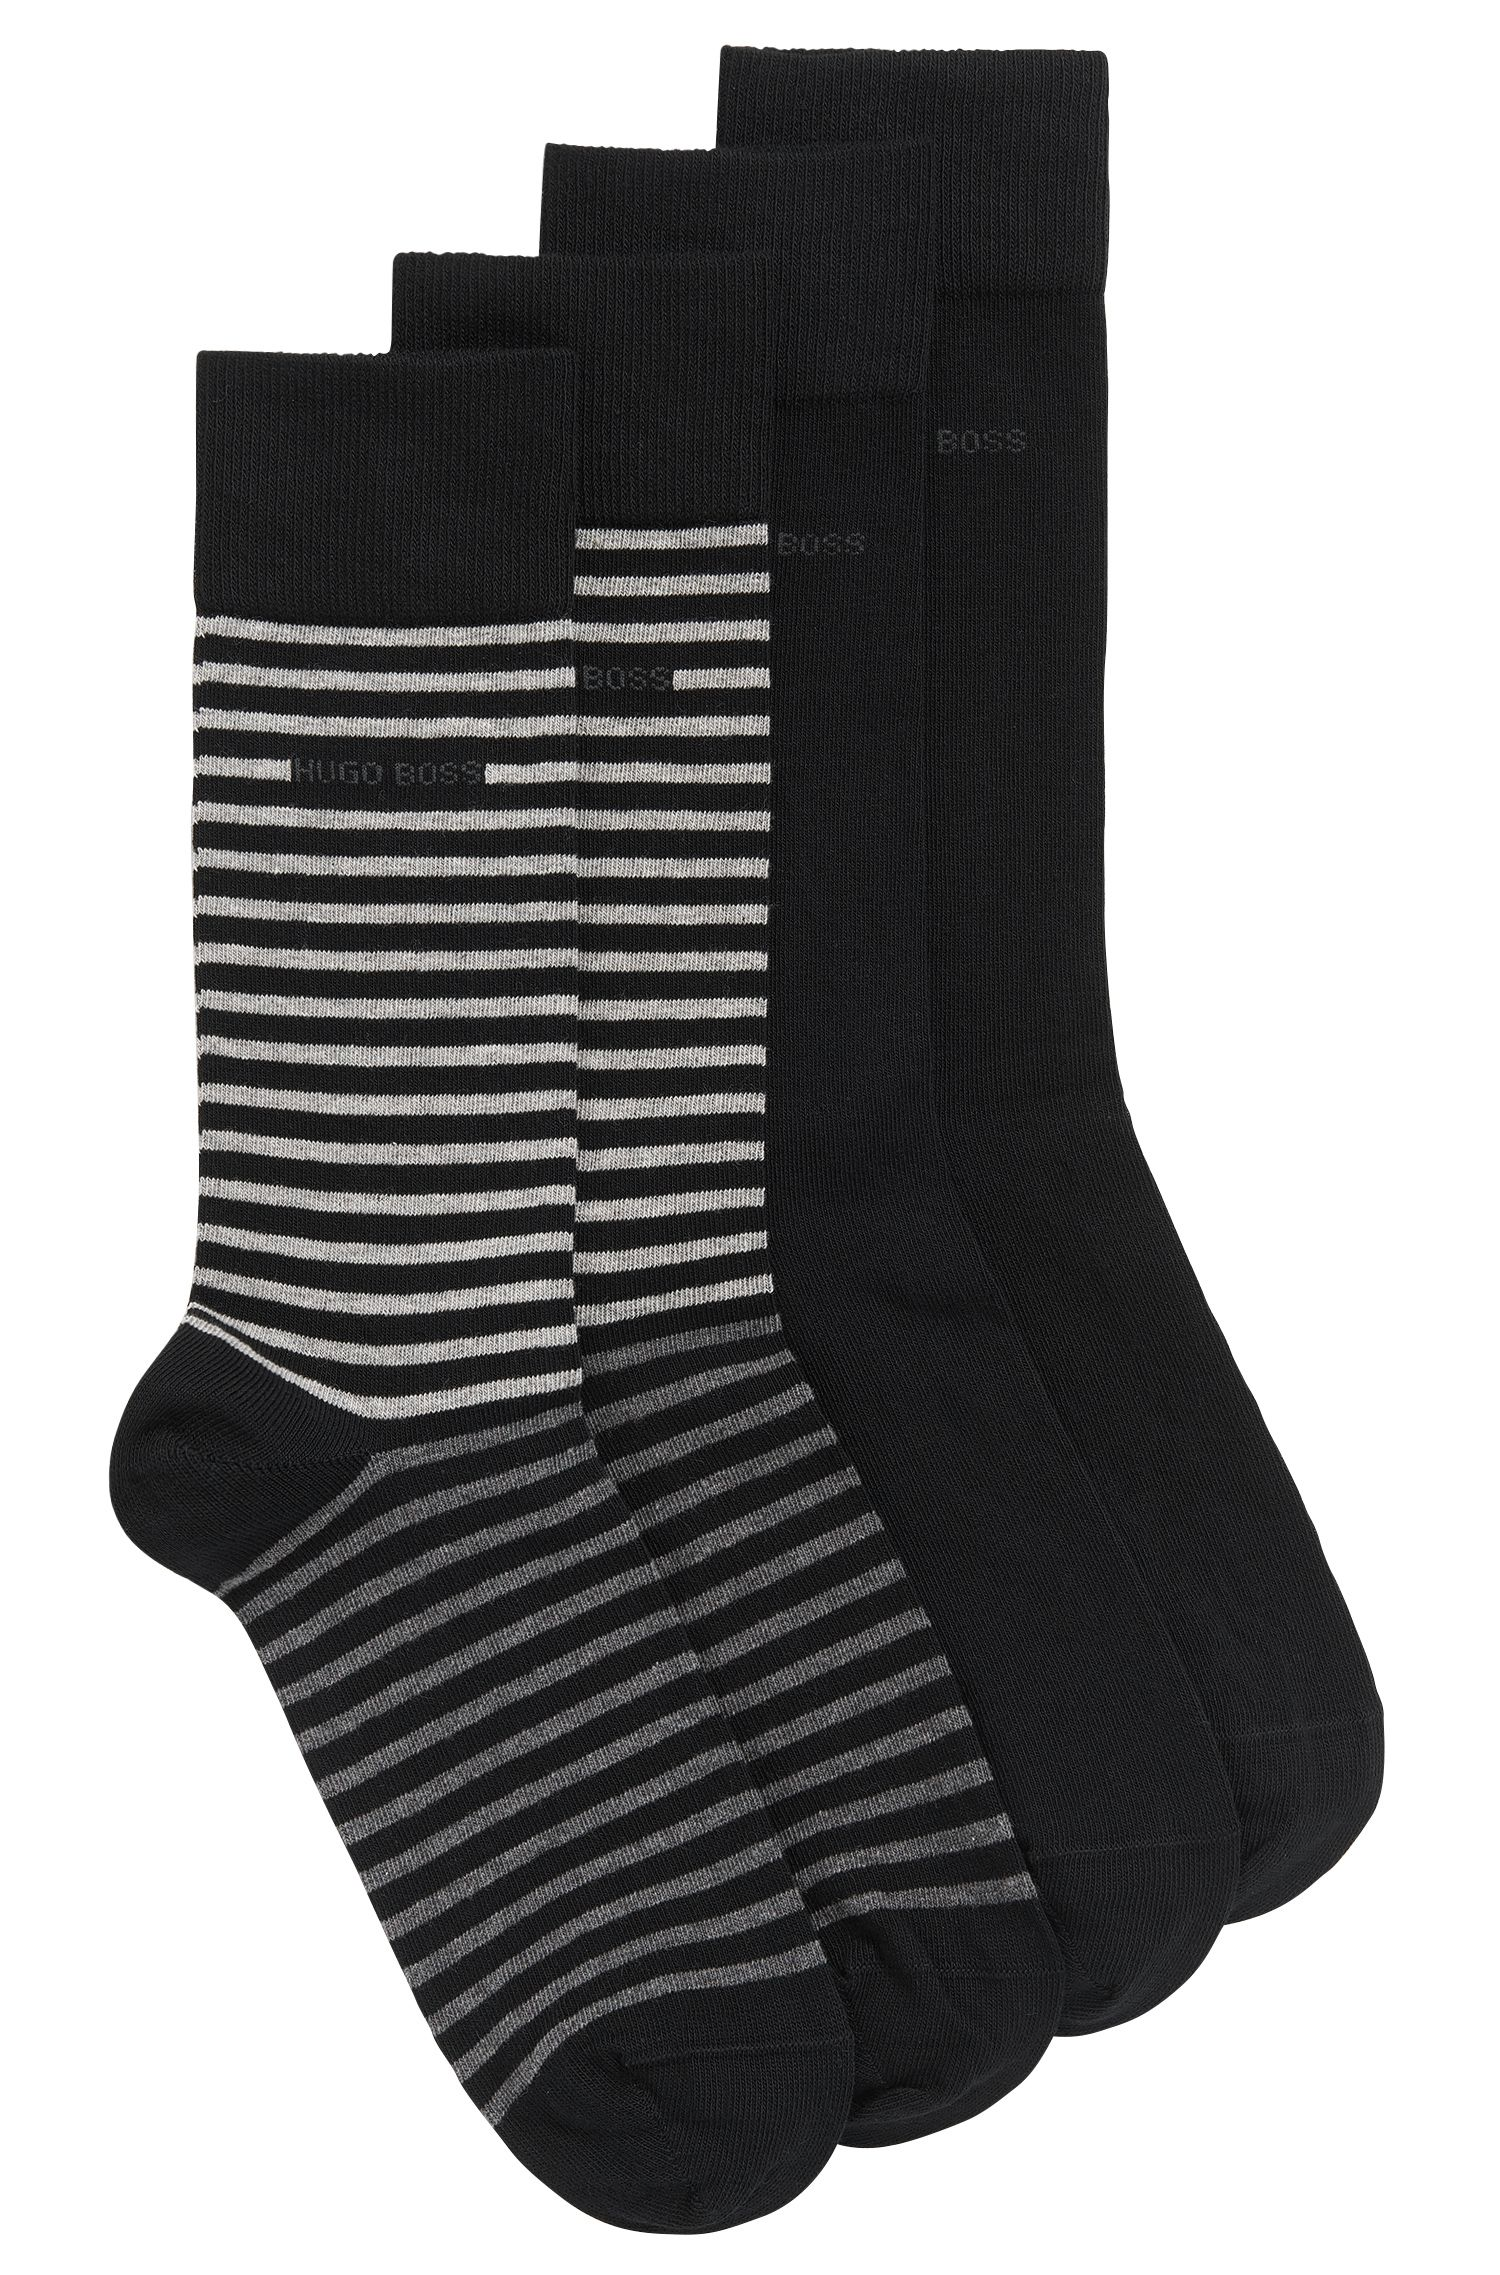 Two-pack of lightweight regular-length socks with combed cotton